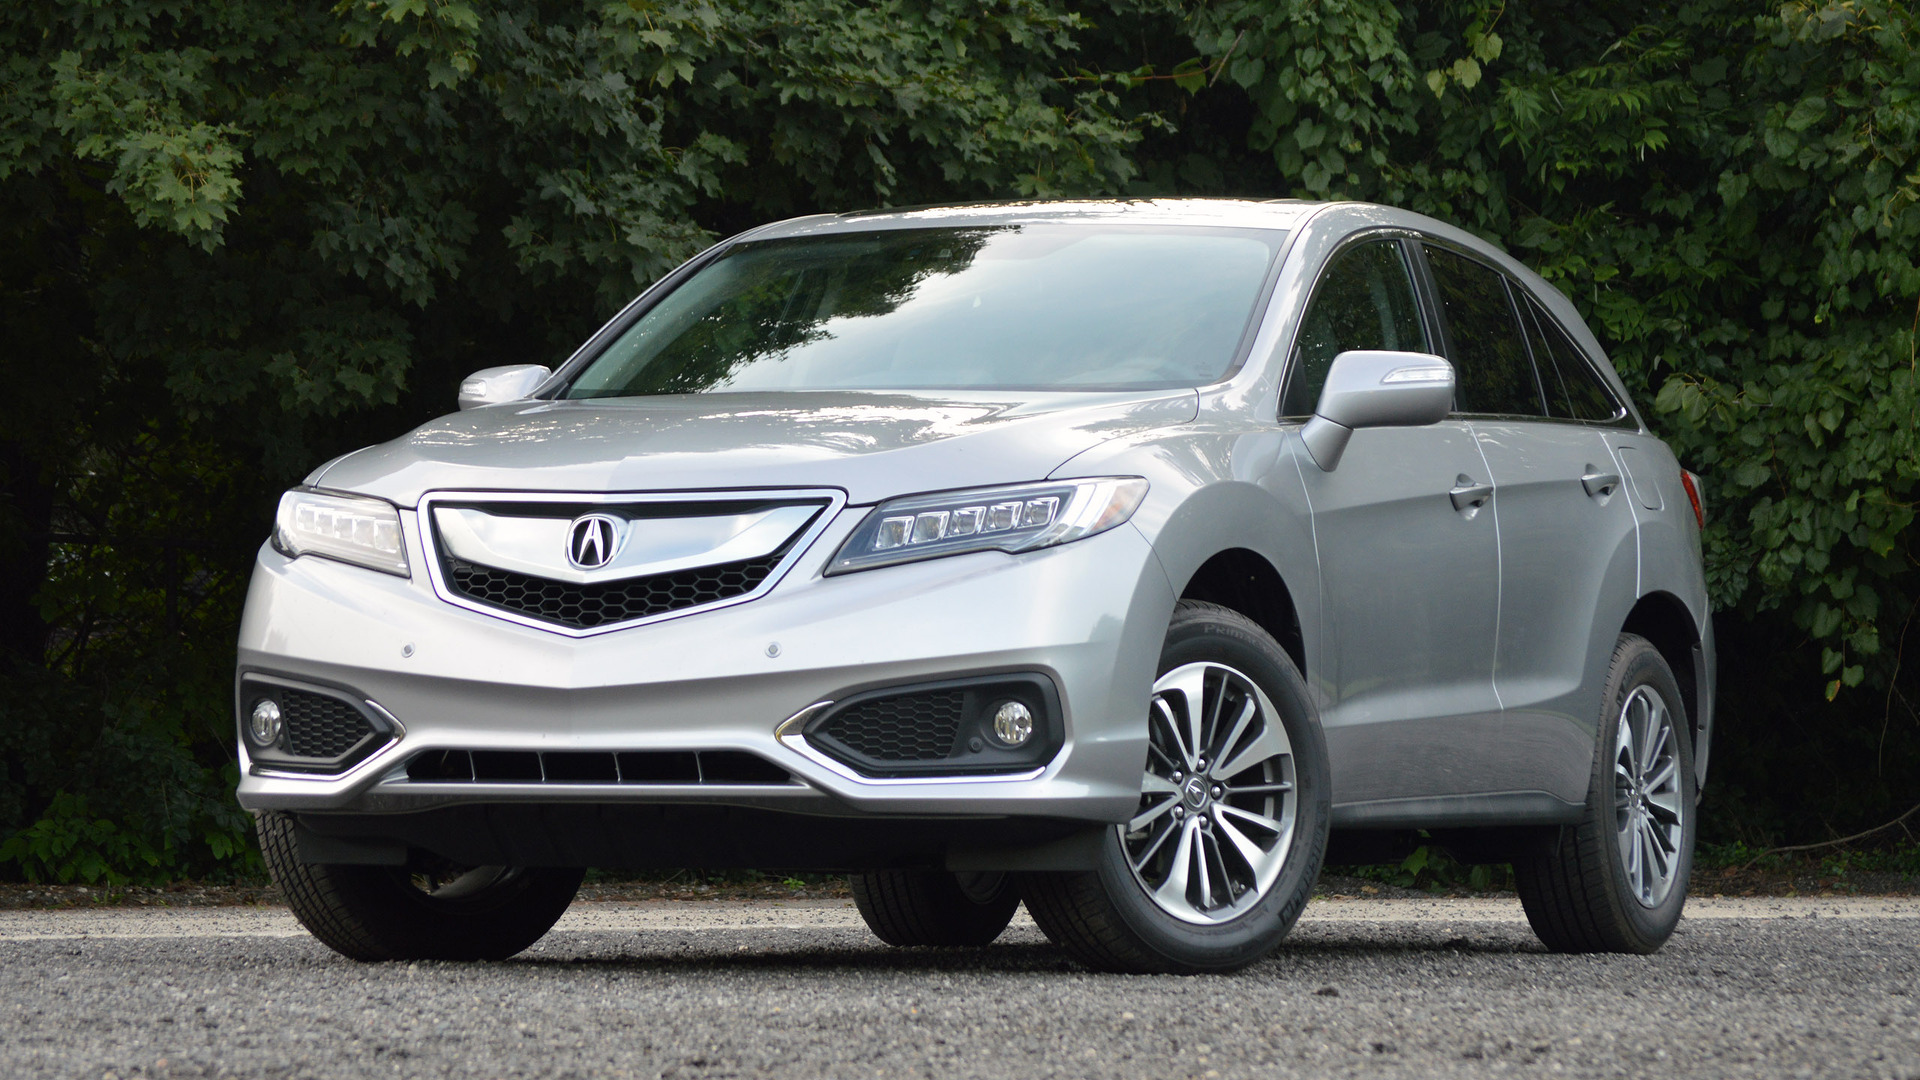 photos rdx gallery photo review acura autoblog